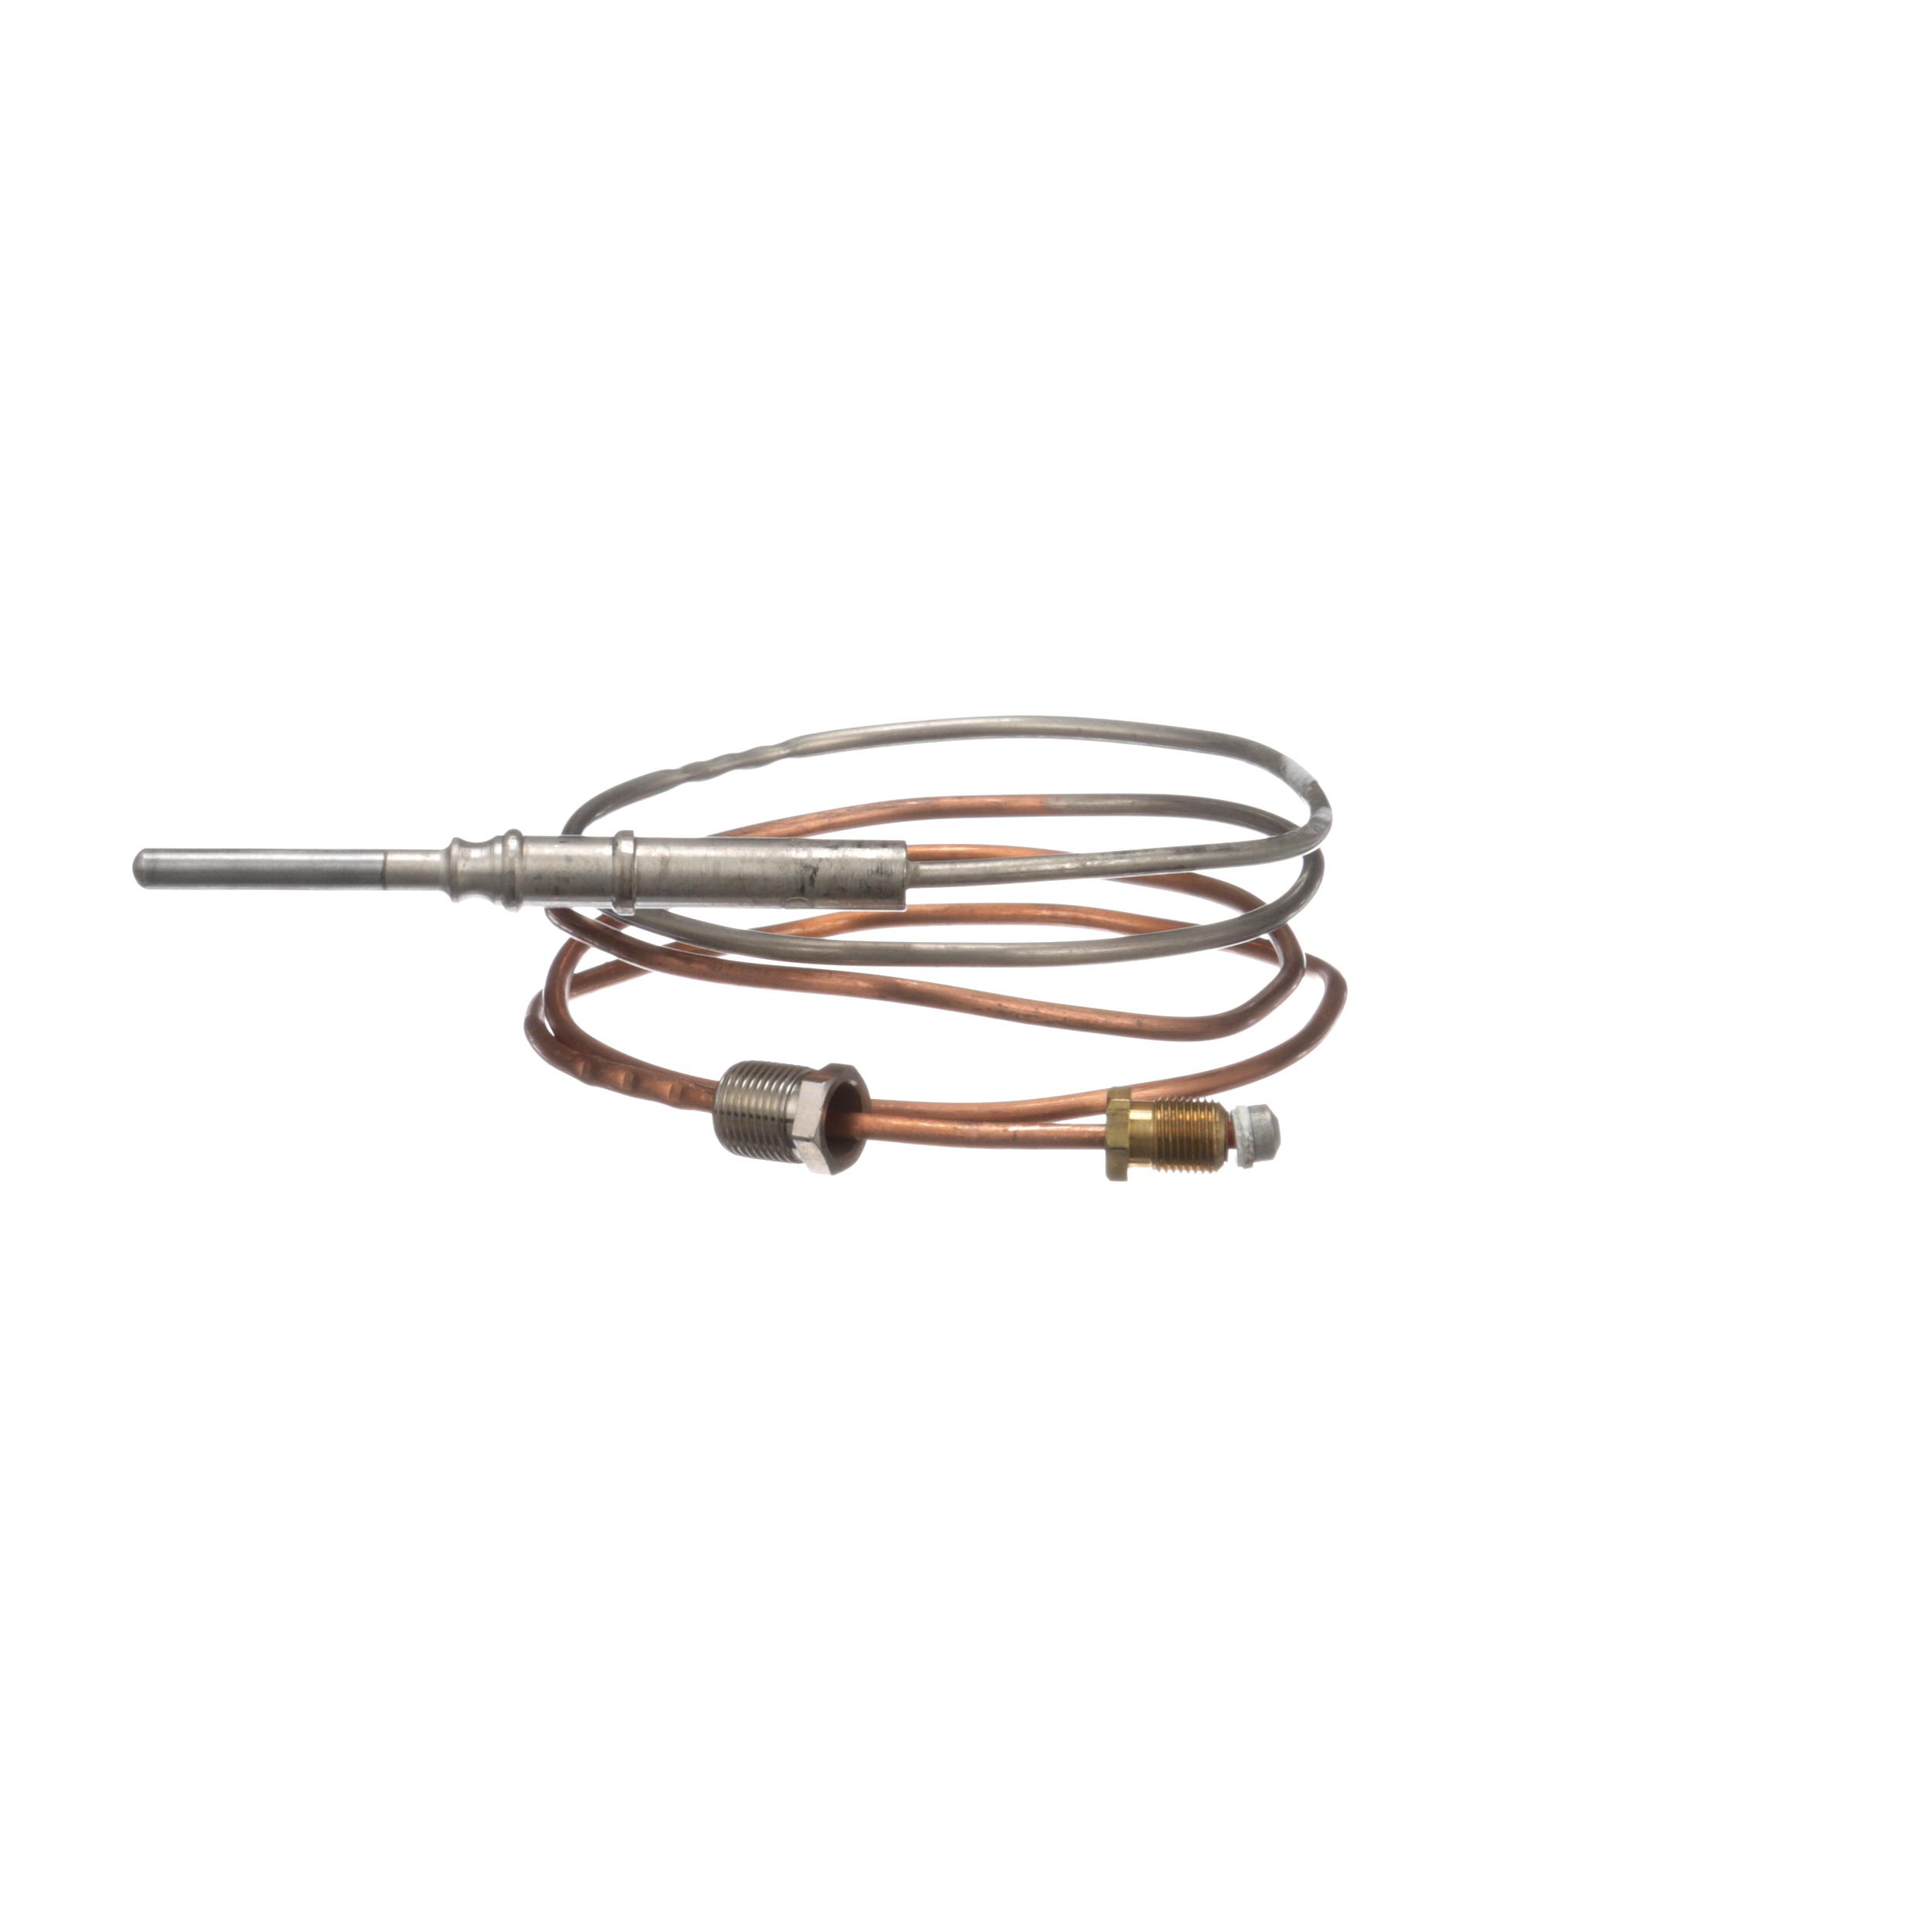 MONTAGUE THERMOCOUPLE 48 IN